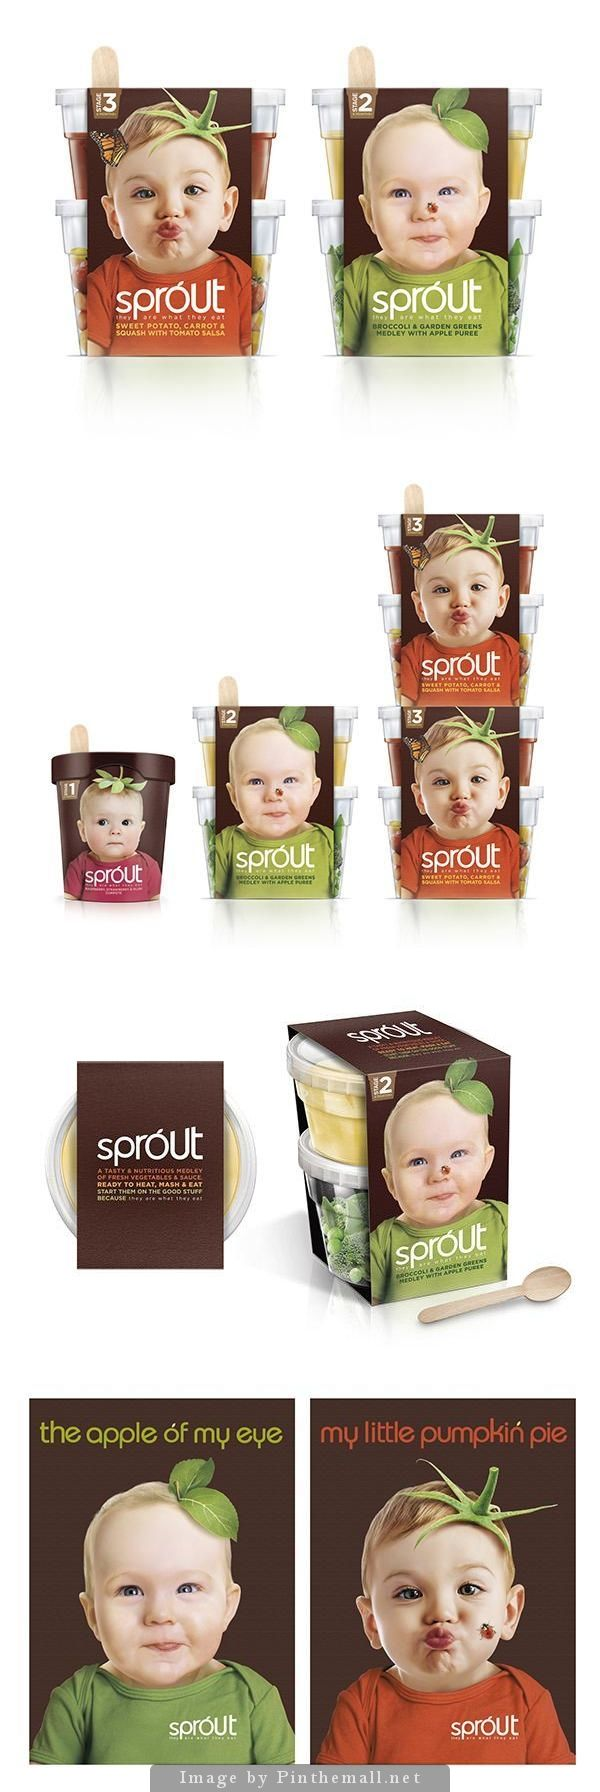 Sprout concept packaging for a new organic baby food in the UK. Pentaward GOLD winner, A AWARD GOLD winner. Extended pin for a team fav Sprout PD